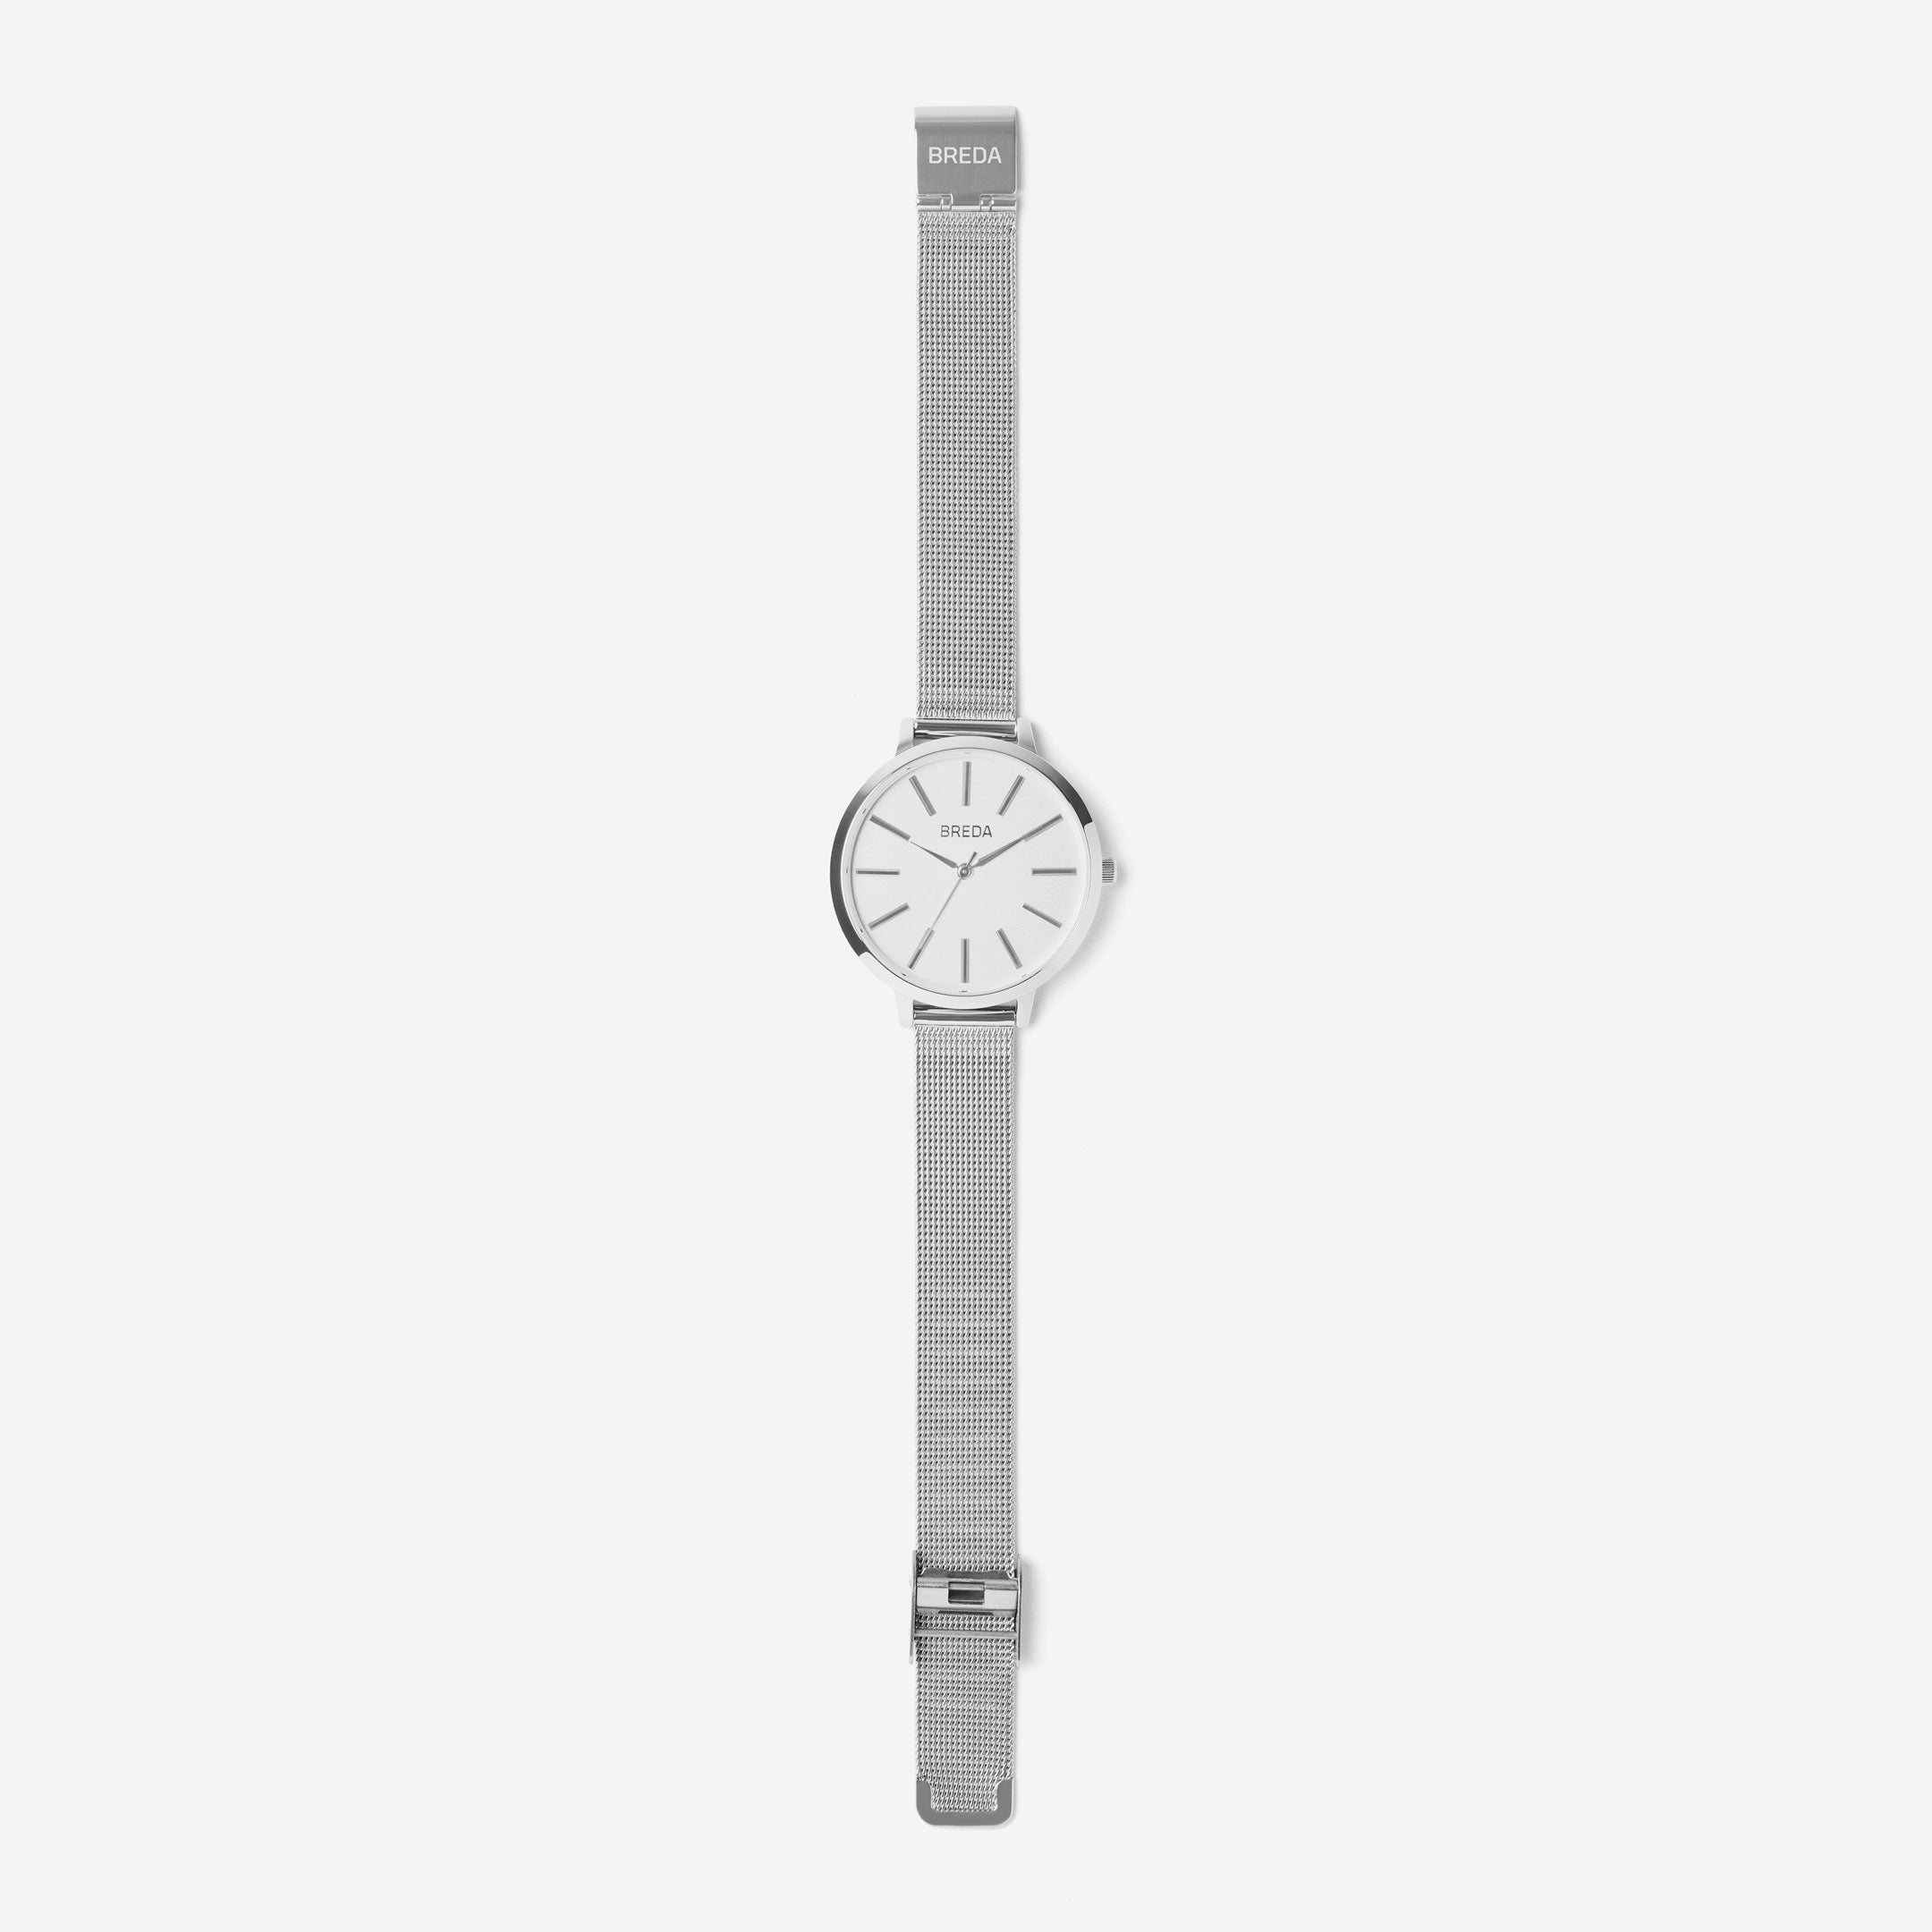 //cdn.shopify.com/s/files/1/0879/6650/products/breda-joule-1731c-silver-mesh-watch-long_1024x1024.jpg?v=1522790912